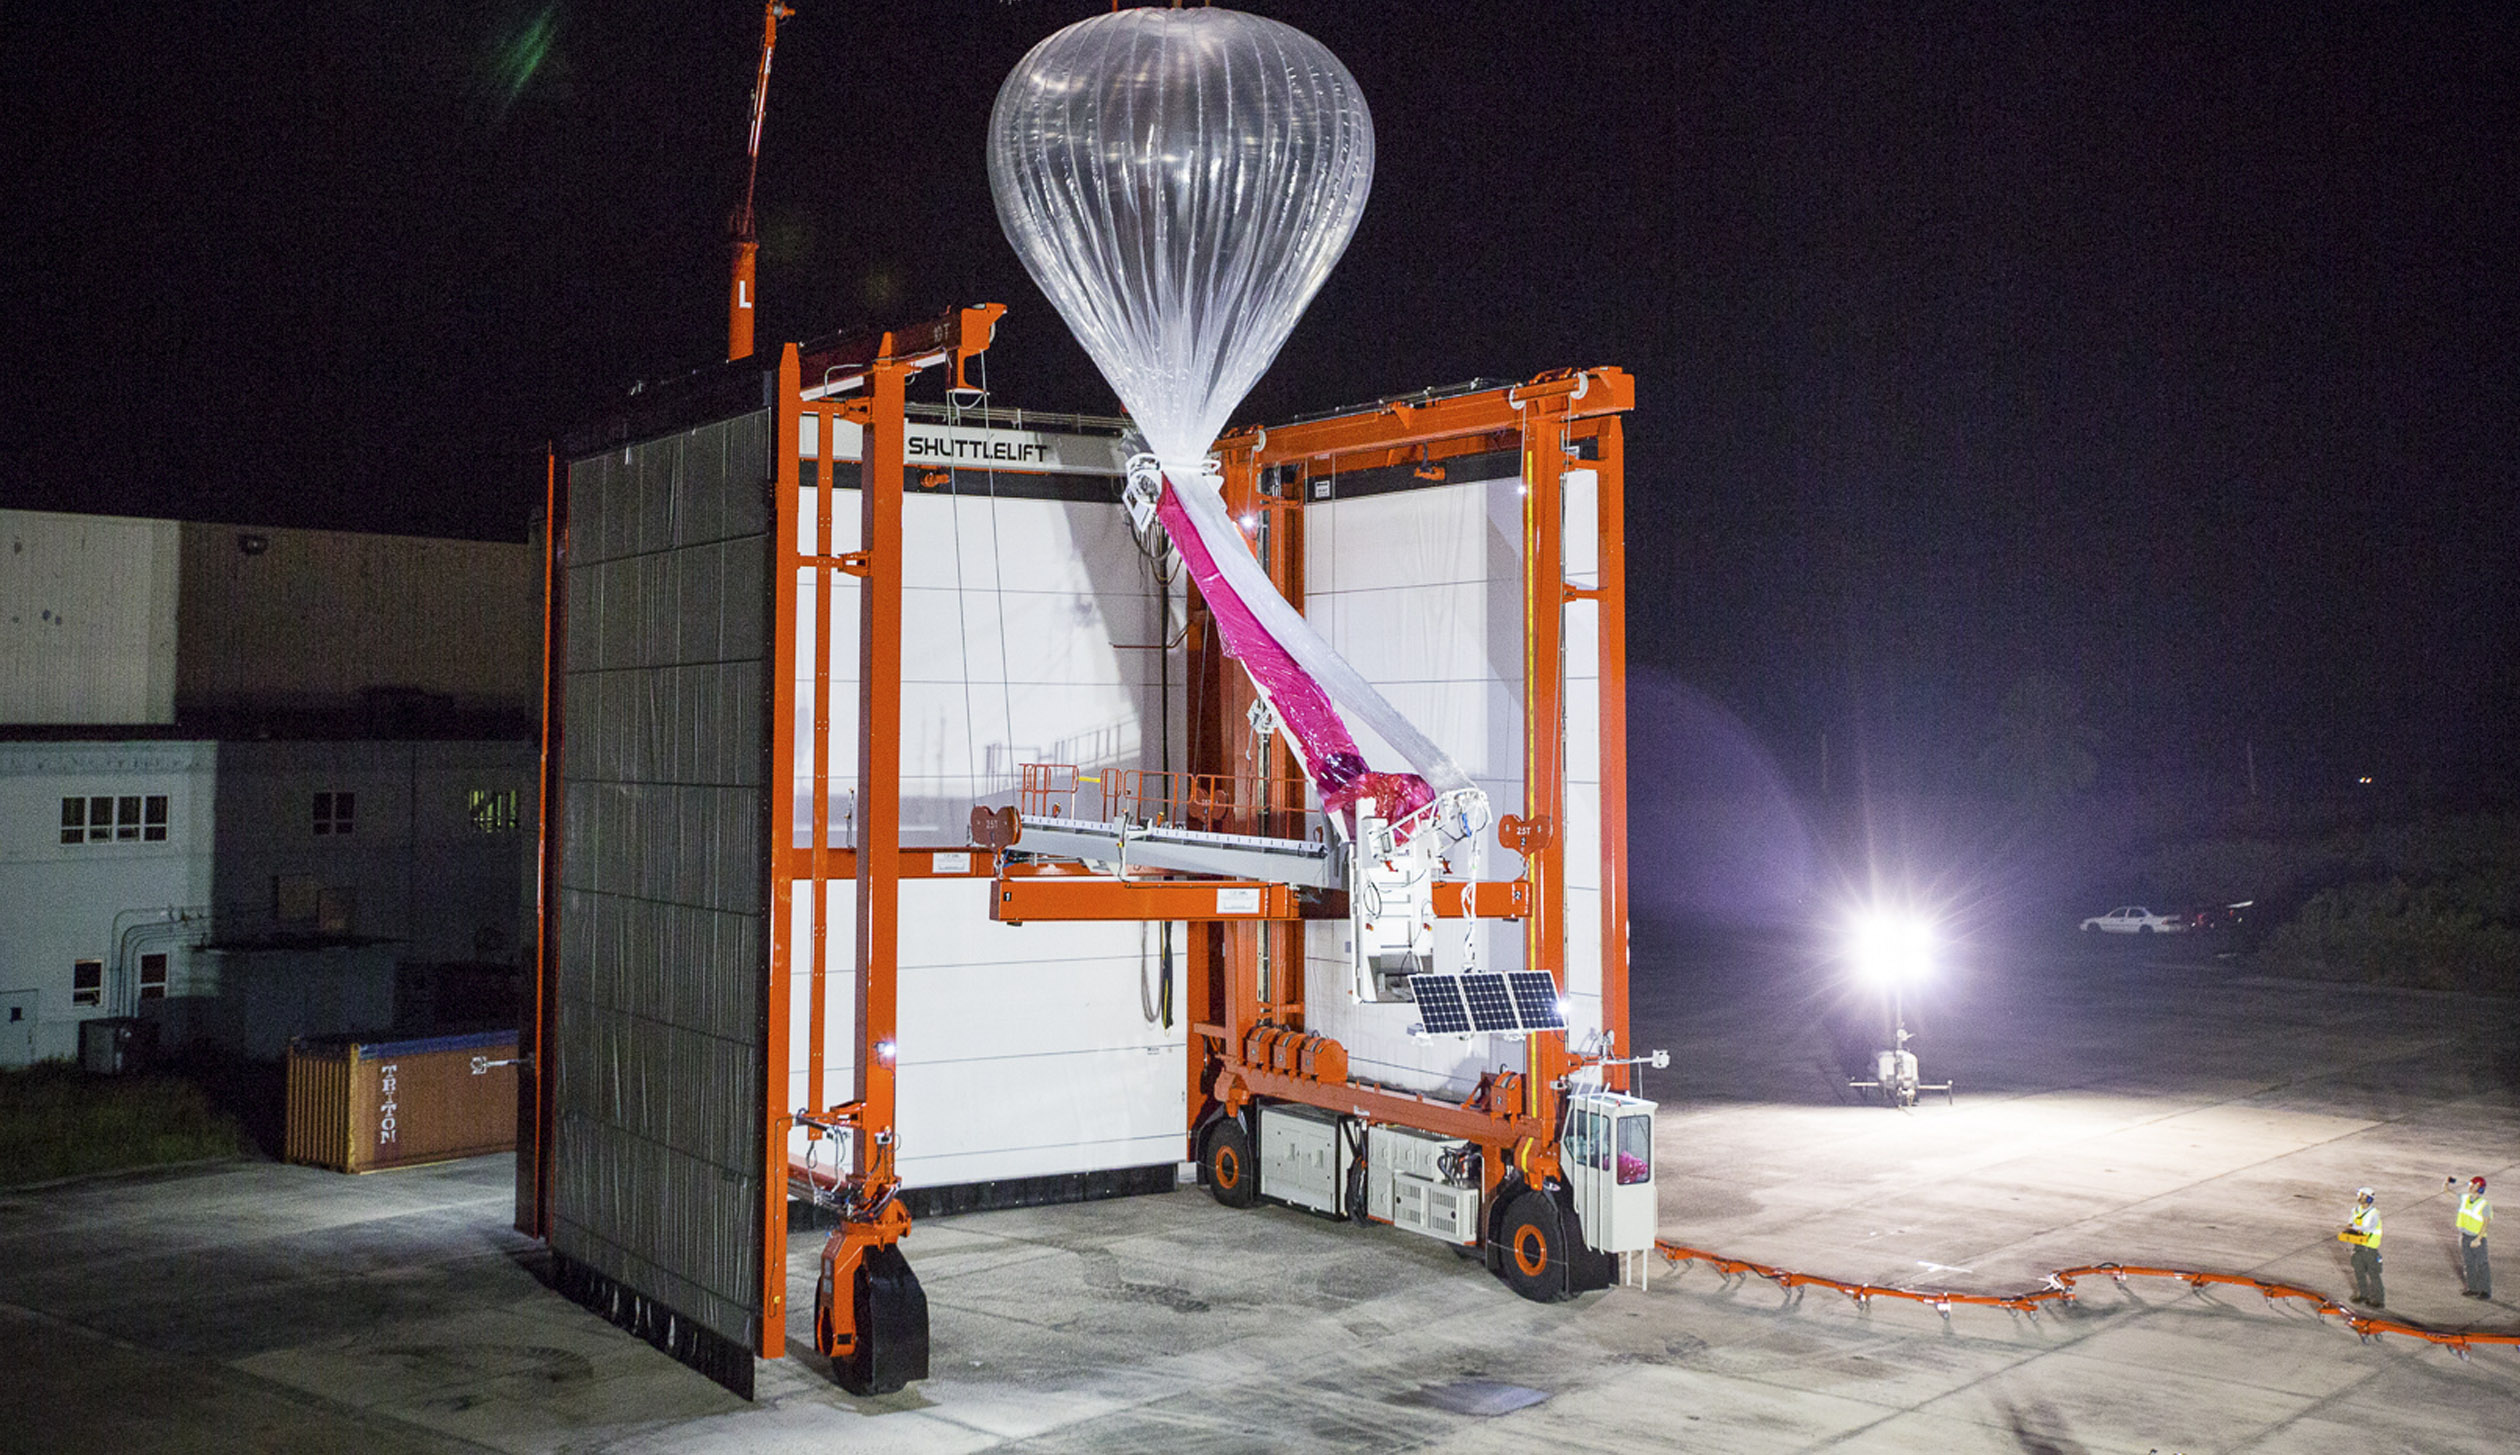 Alphabet's Project Loon Autolauncher designed to fill and launch a new balloon every 30 minutes.